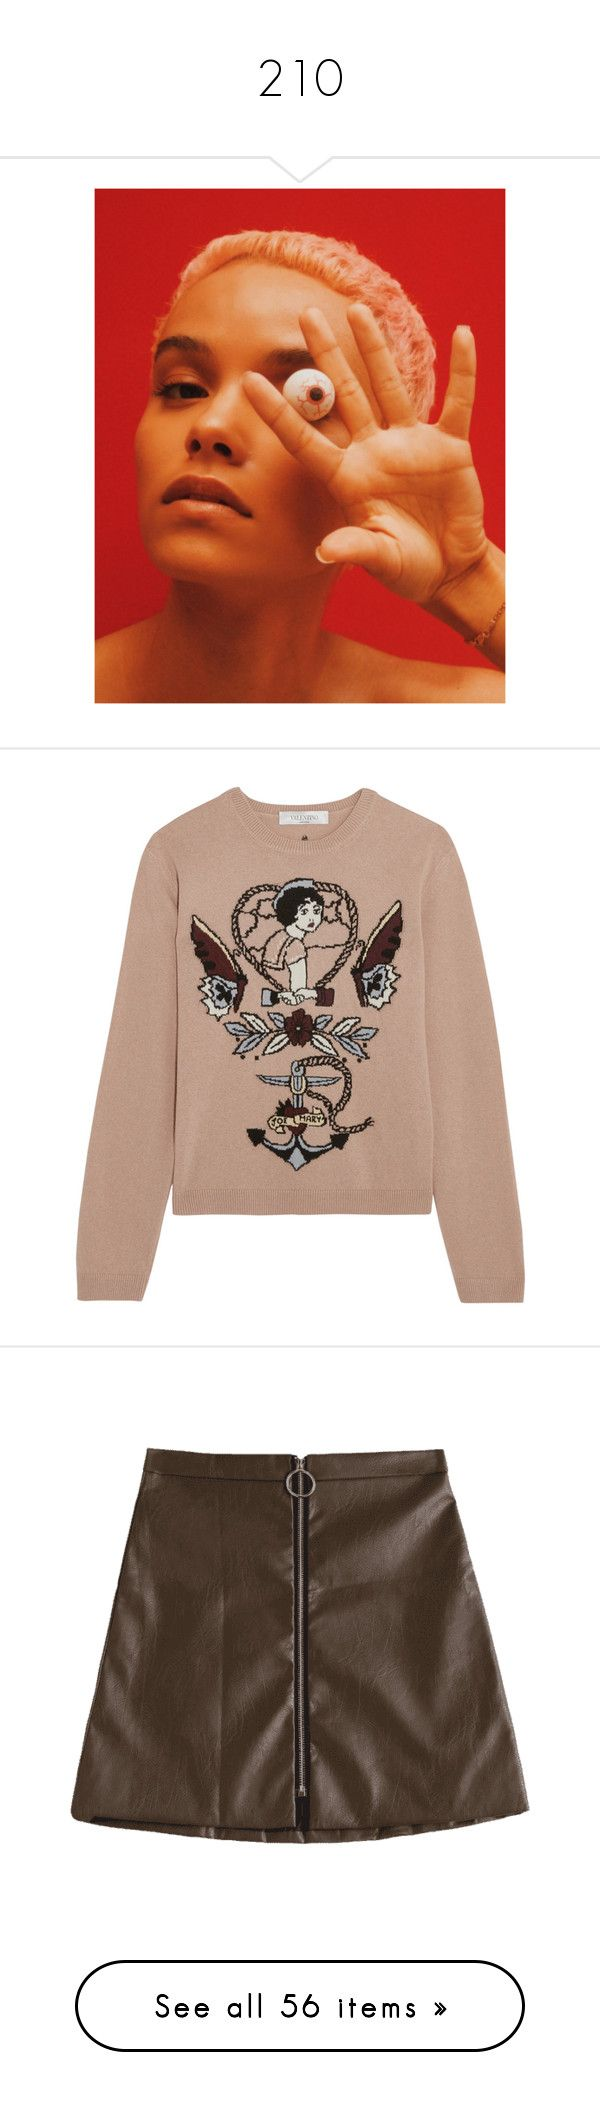 """""""210"""" by pocahaunted666 ❤ liked on Polyvore featuring tops, sweaters, valentino, intarsia, shirts, wool sweaters, colorful sweaters, woven top, multi colored sweater and multi color sweater"""